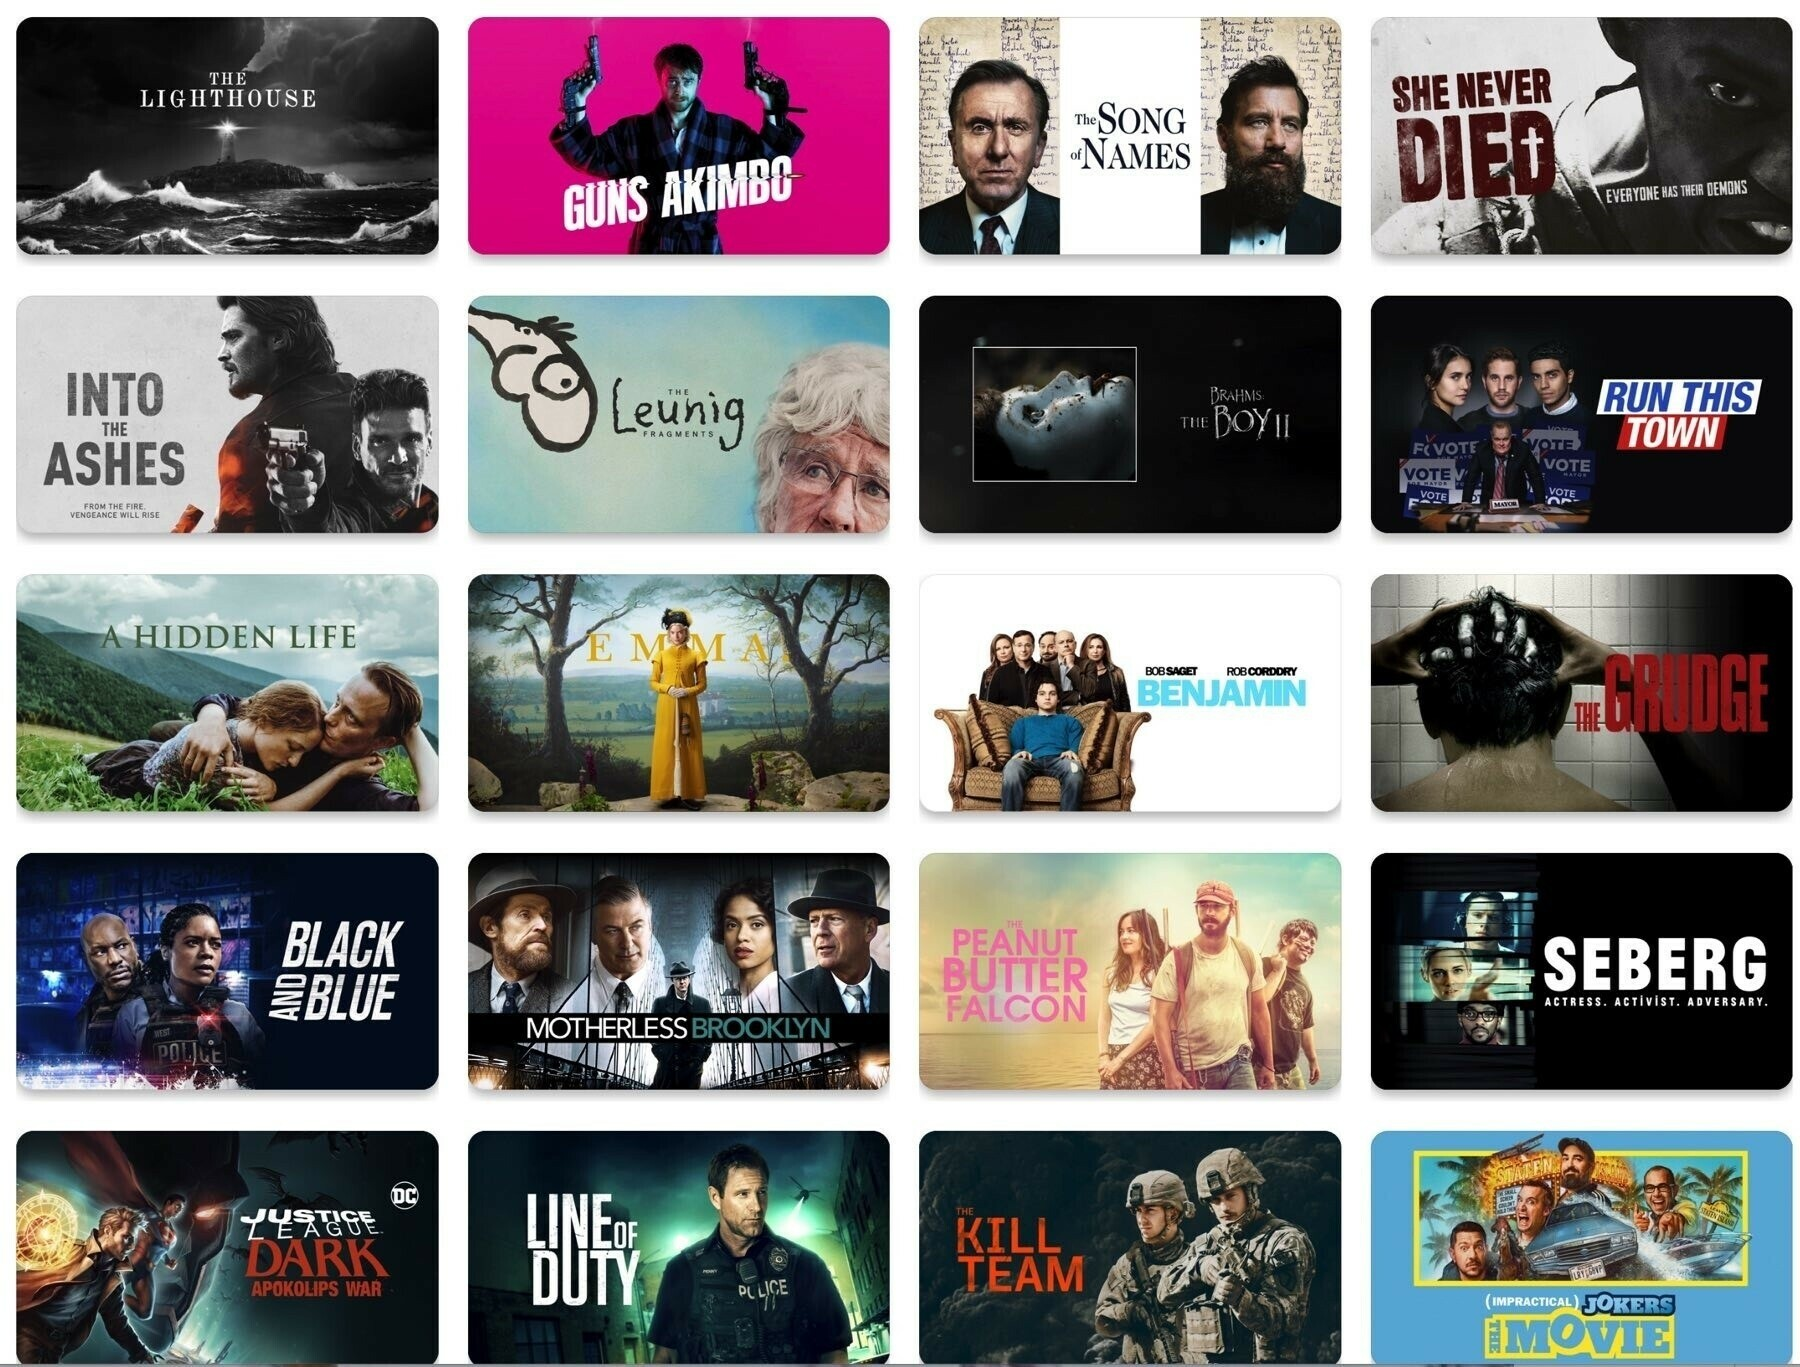 Screenshot of TV+ Latest releases showing mostly male-focused movies.